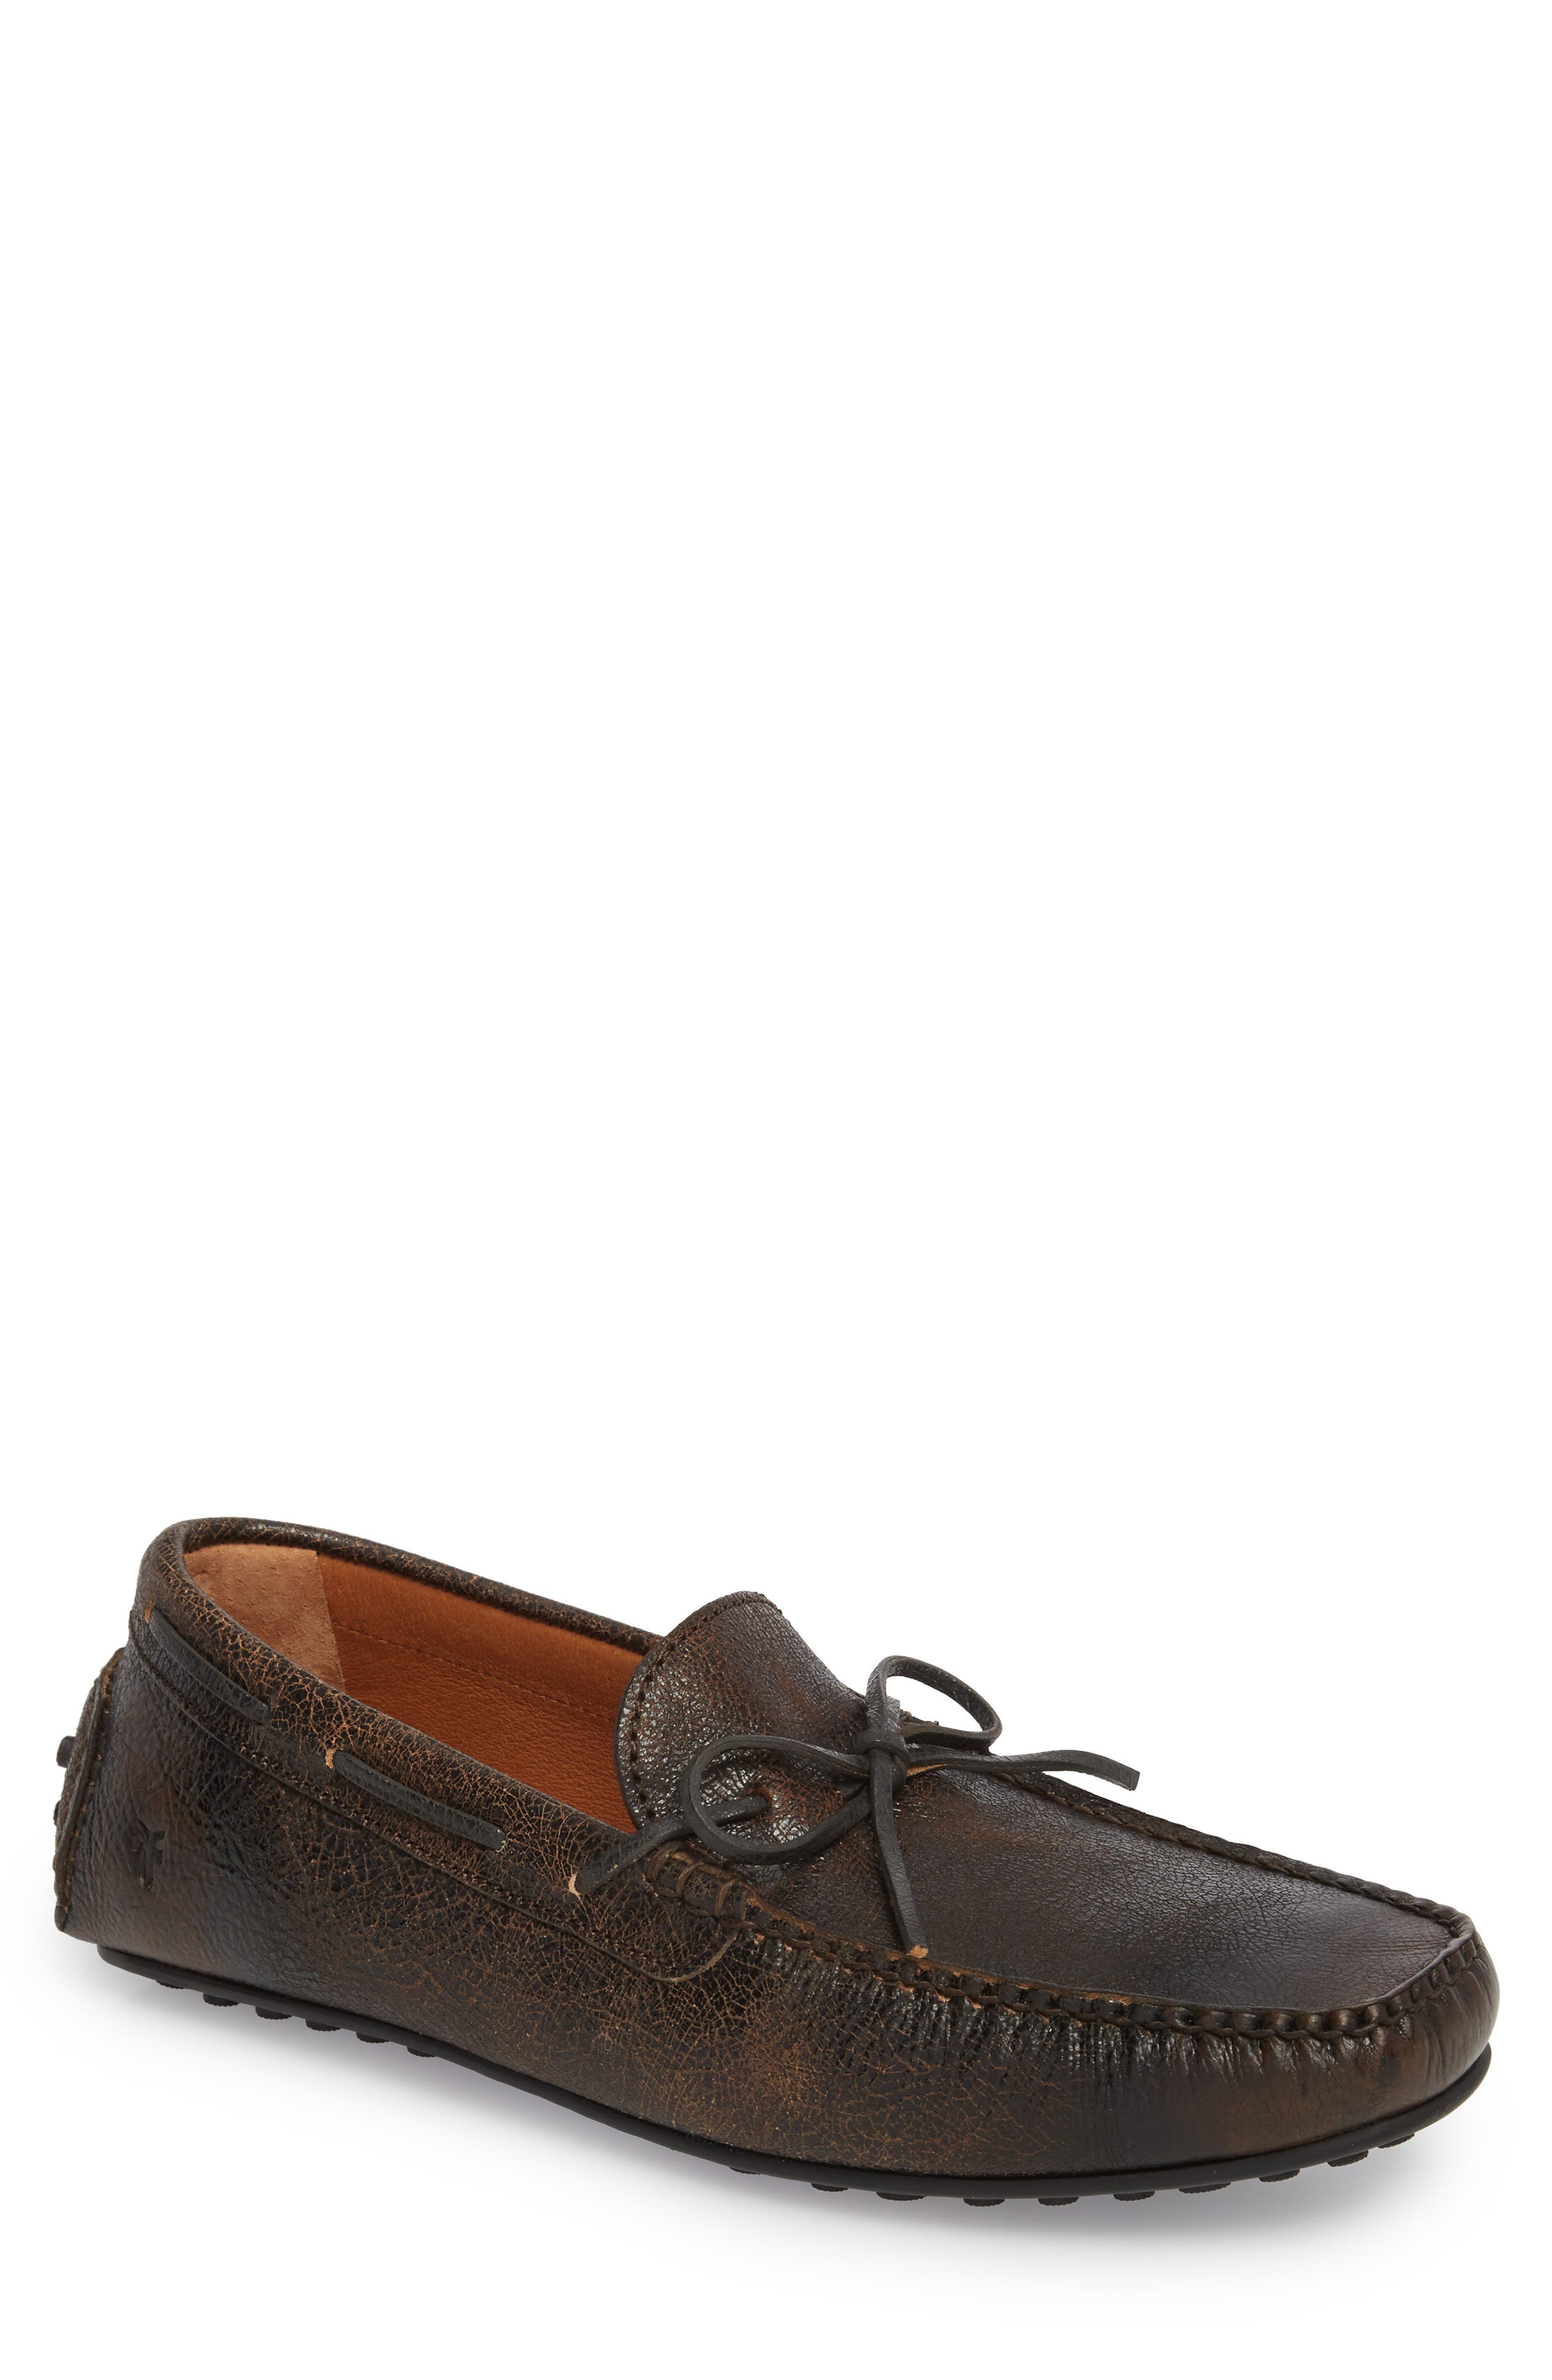 Allen Loafer,                             Main thumbnail 1, color,                             200